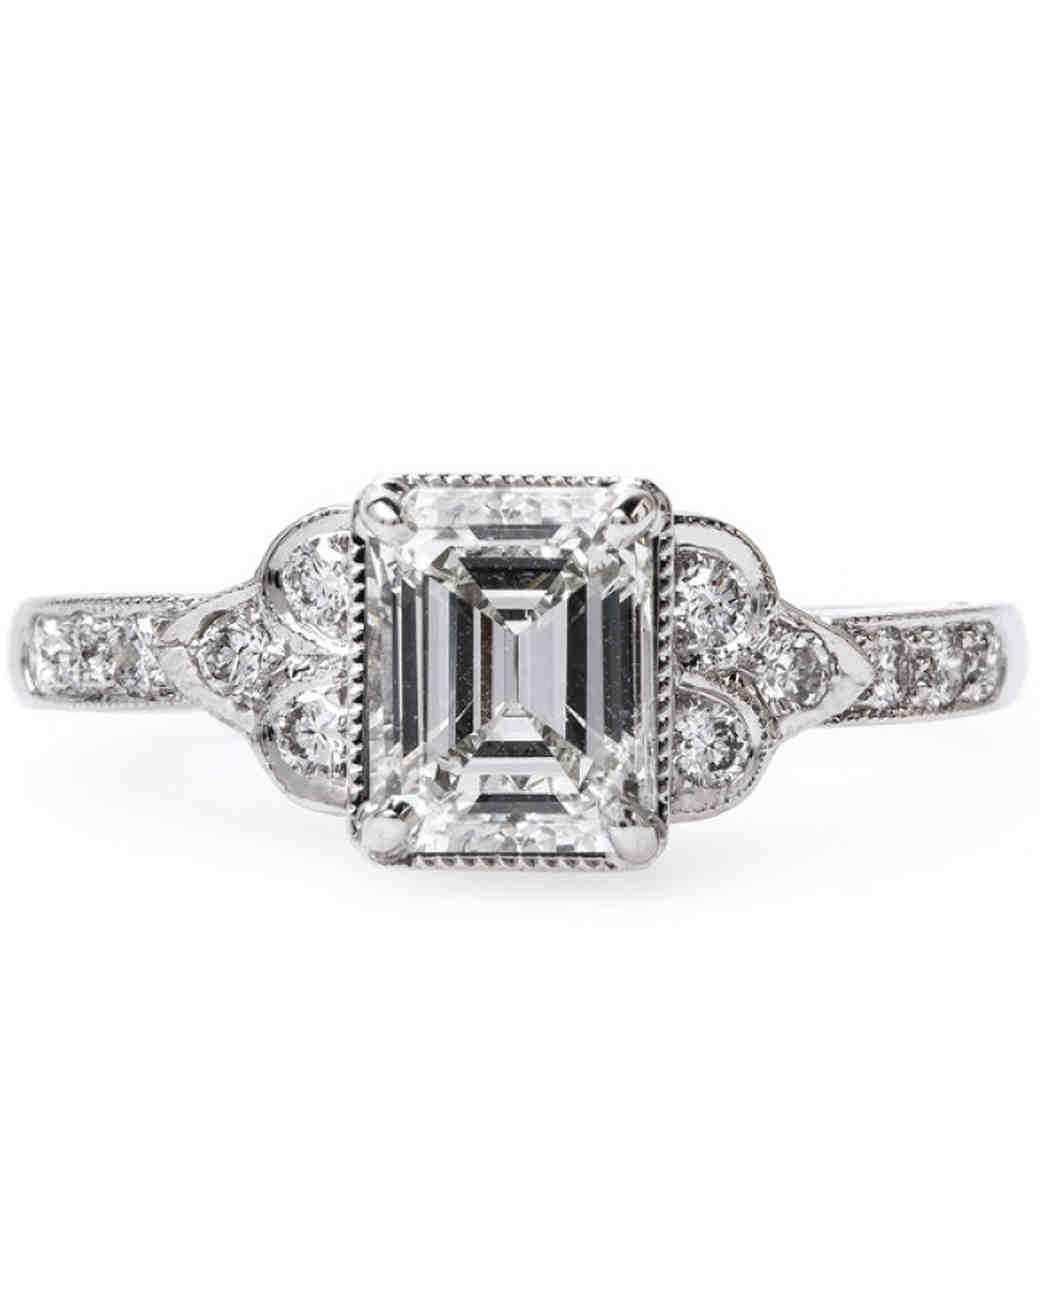 Claire Pettibone Emerald-Cut Engagement Ring